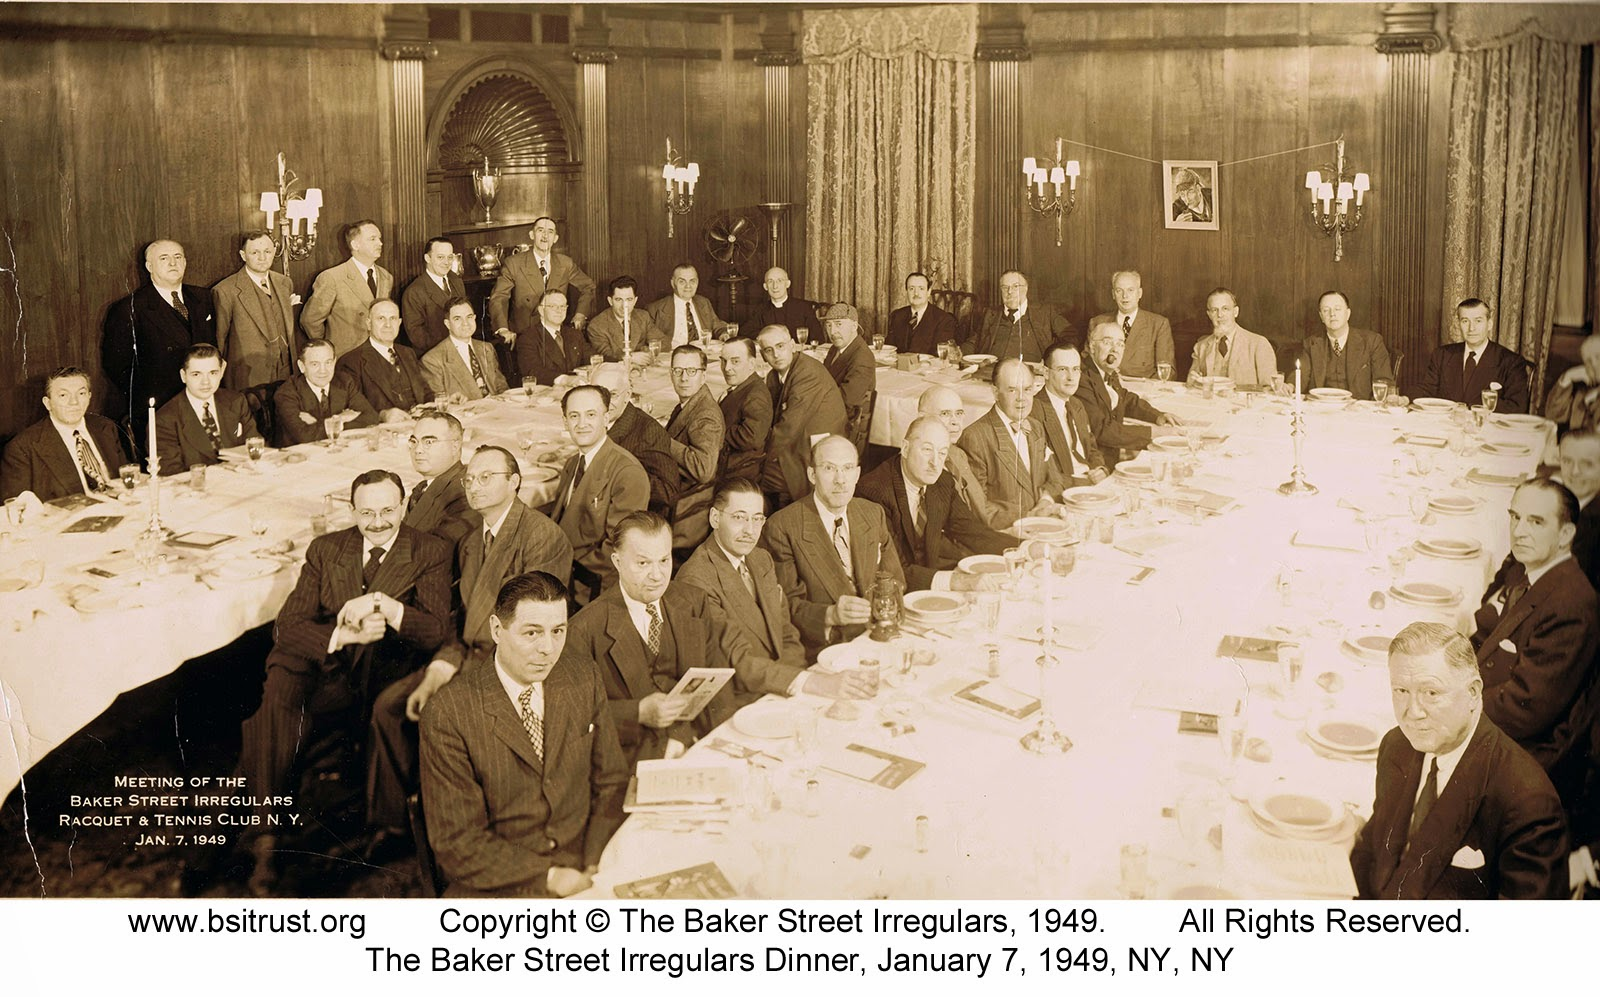 The 1949 BSI Dinner group photo